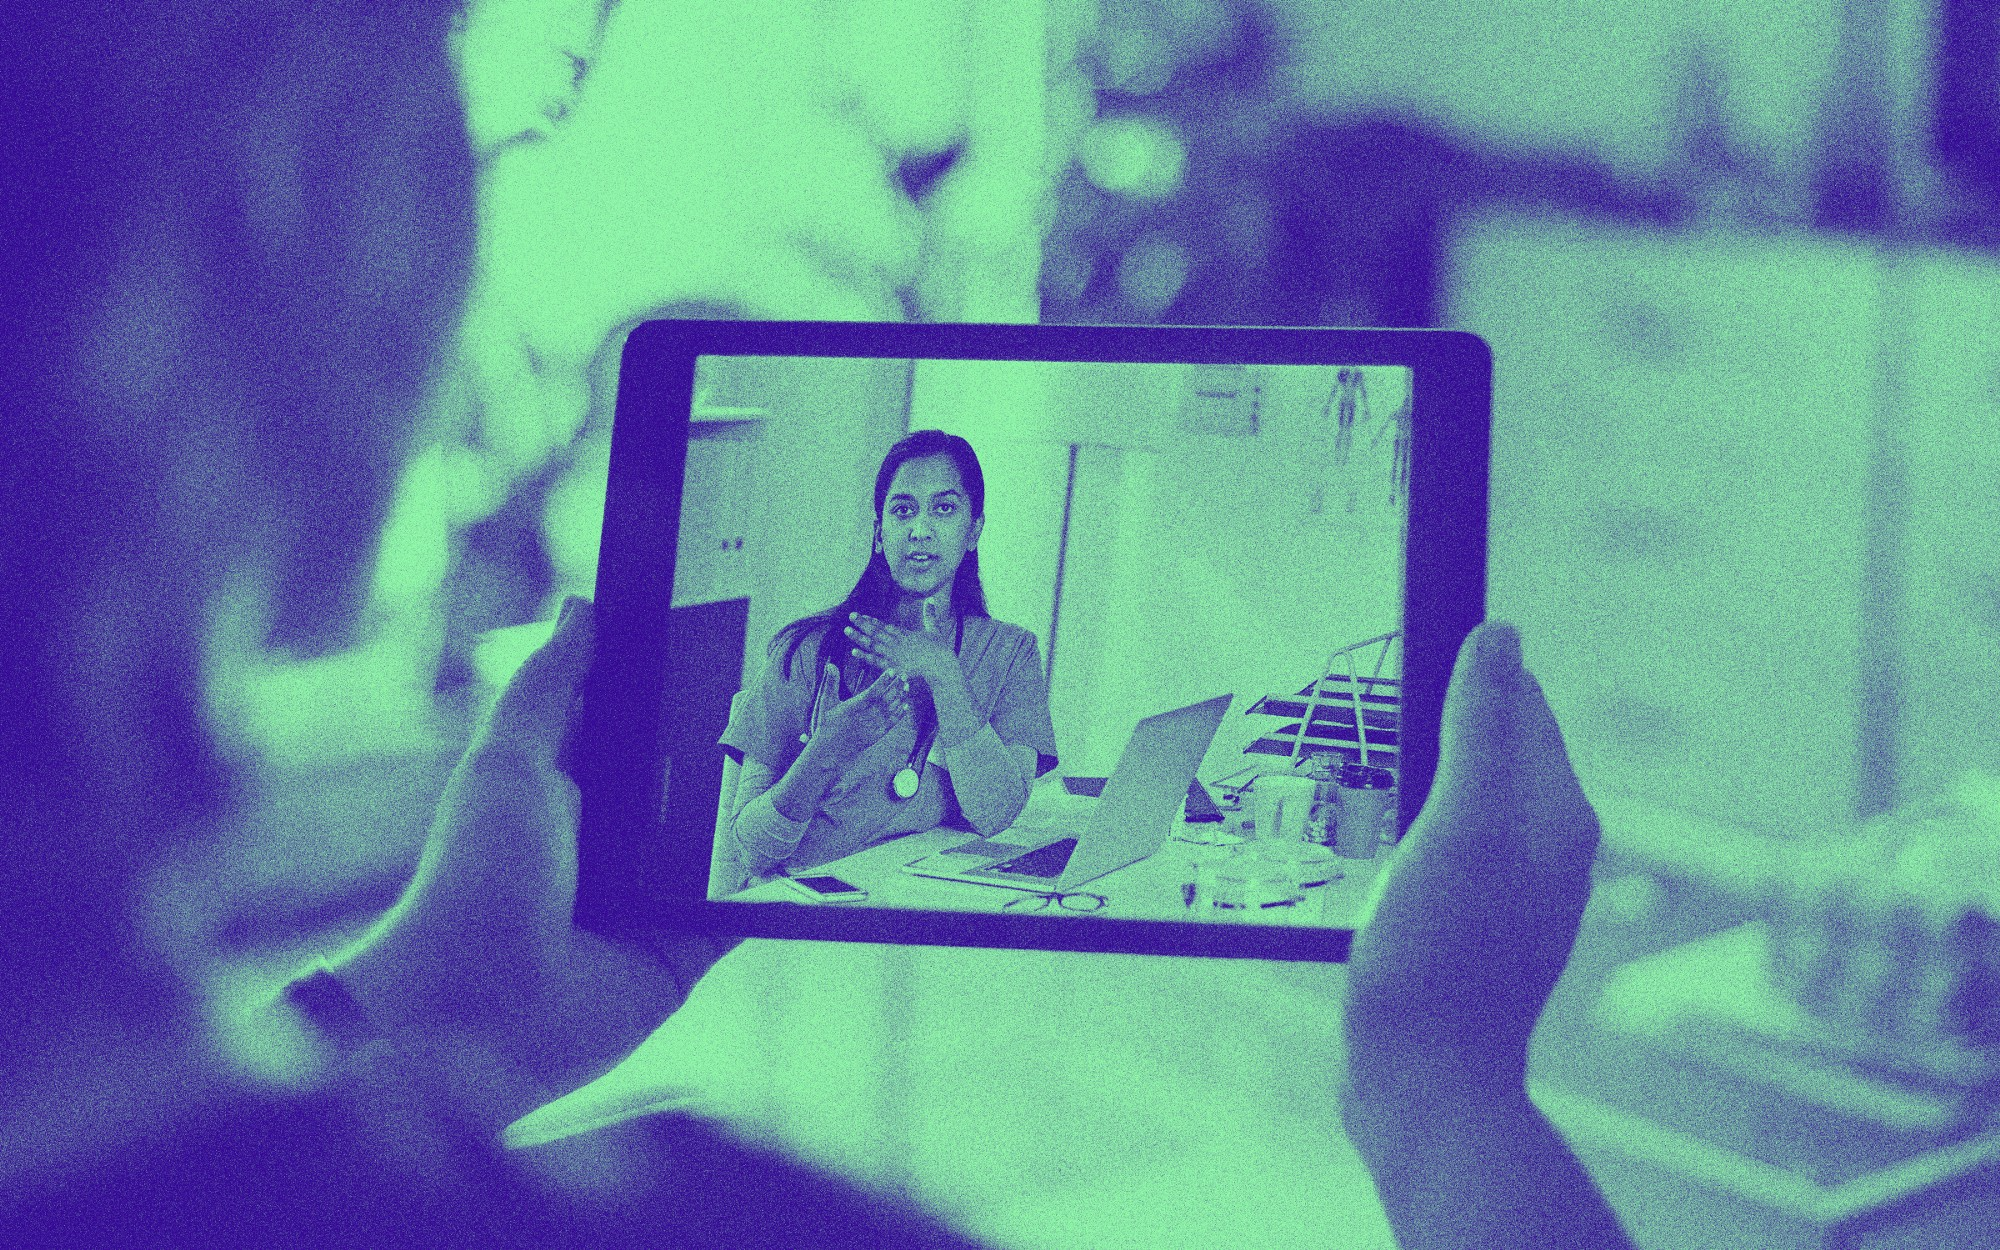 A woman holds up a digital tablet and talks to a doctor over teleconference.